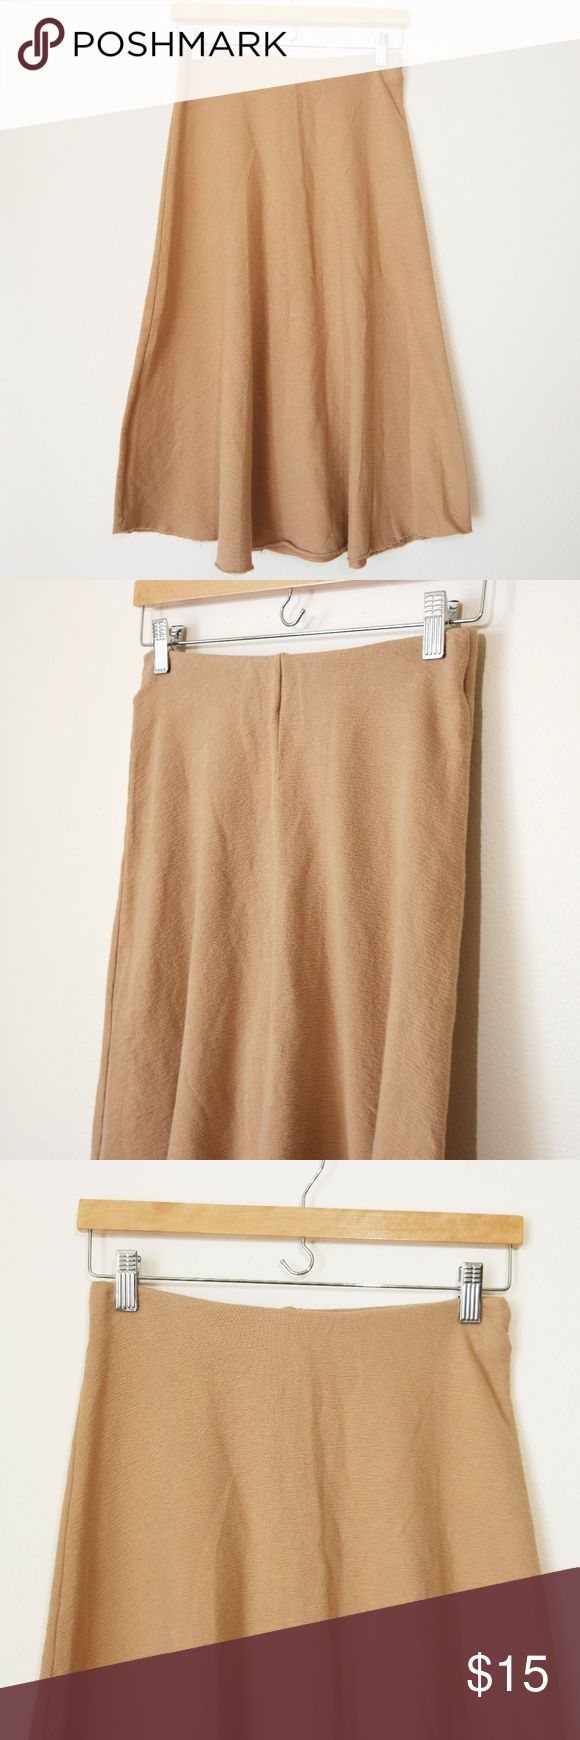 """Zara Brown A Line Midi Skirt In great condition. Comes with elastic waistband and raw hem.  The color of the skirt is slightly on the more blush tone of brown. Very feminine and minimal.  Waist: 26"""" Length: 29"""" Zara Skirts Midi"""